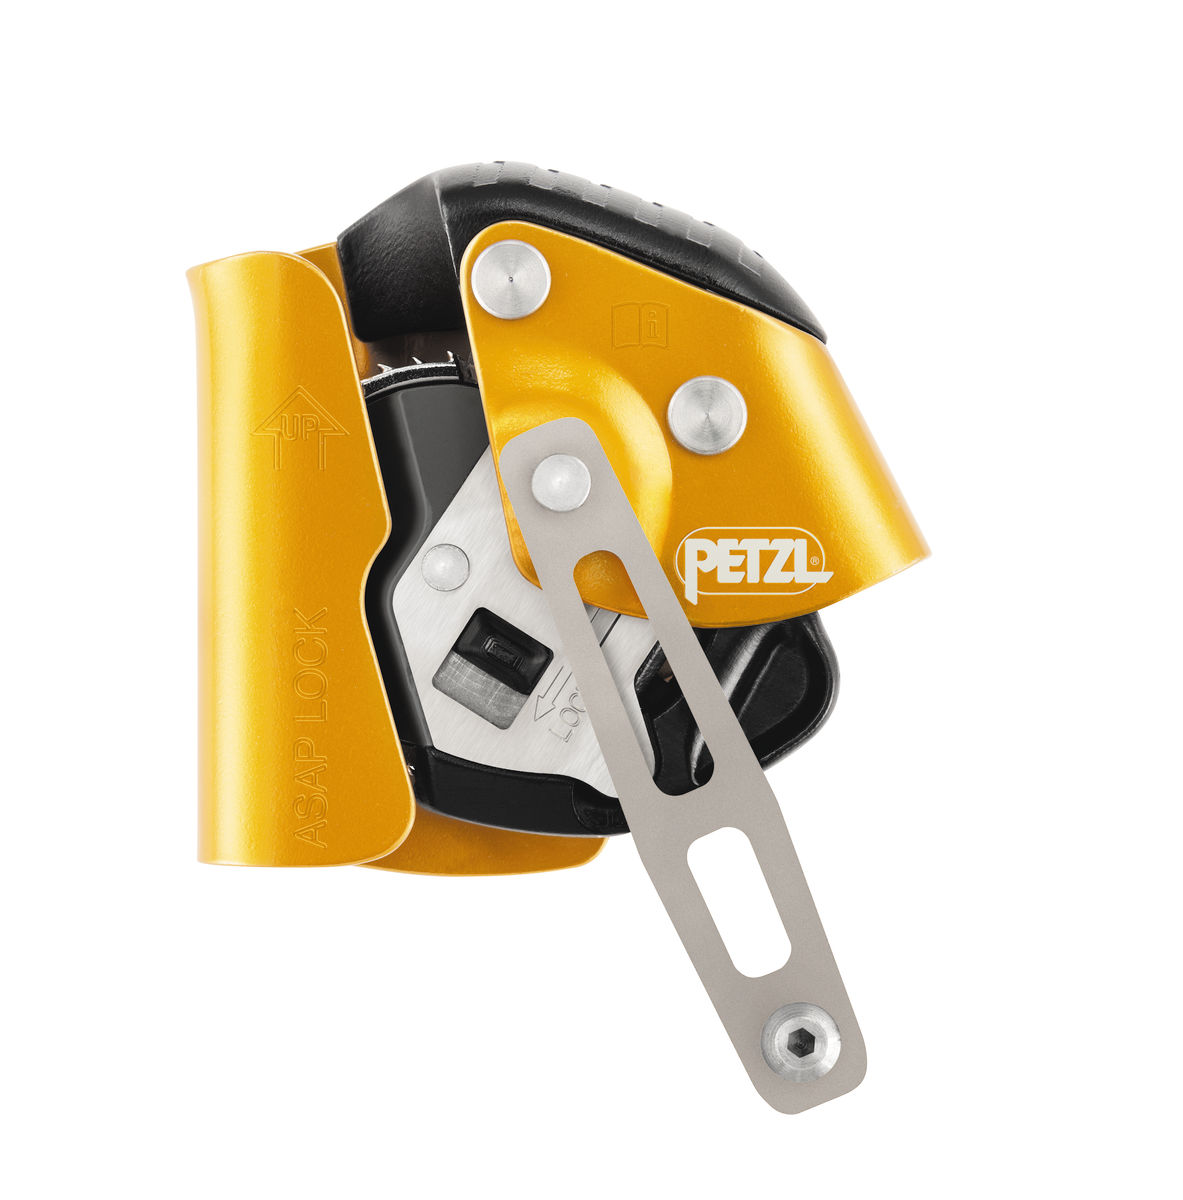 Inspection Required for Petzl ASAP Lock